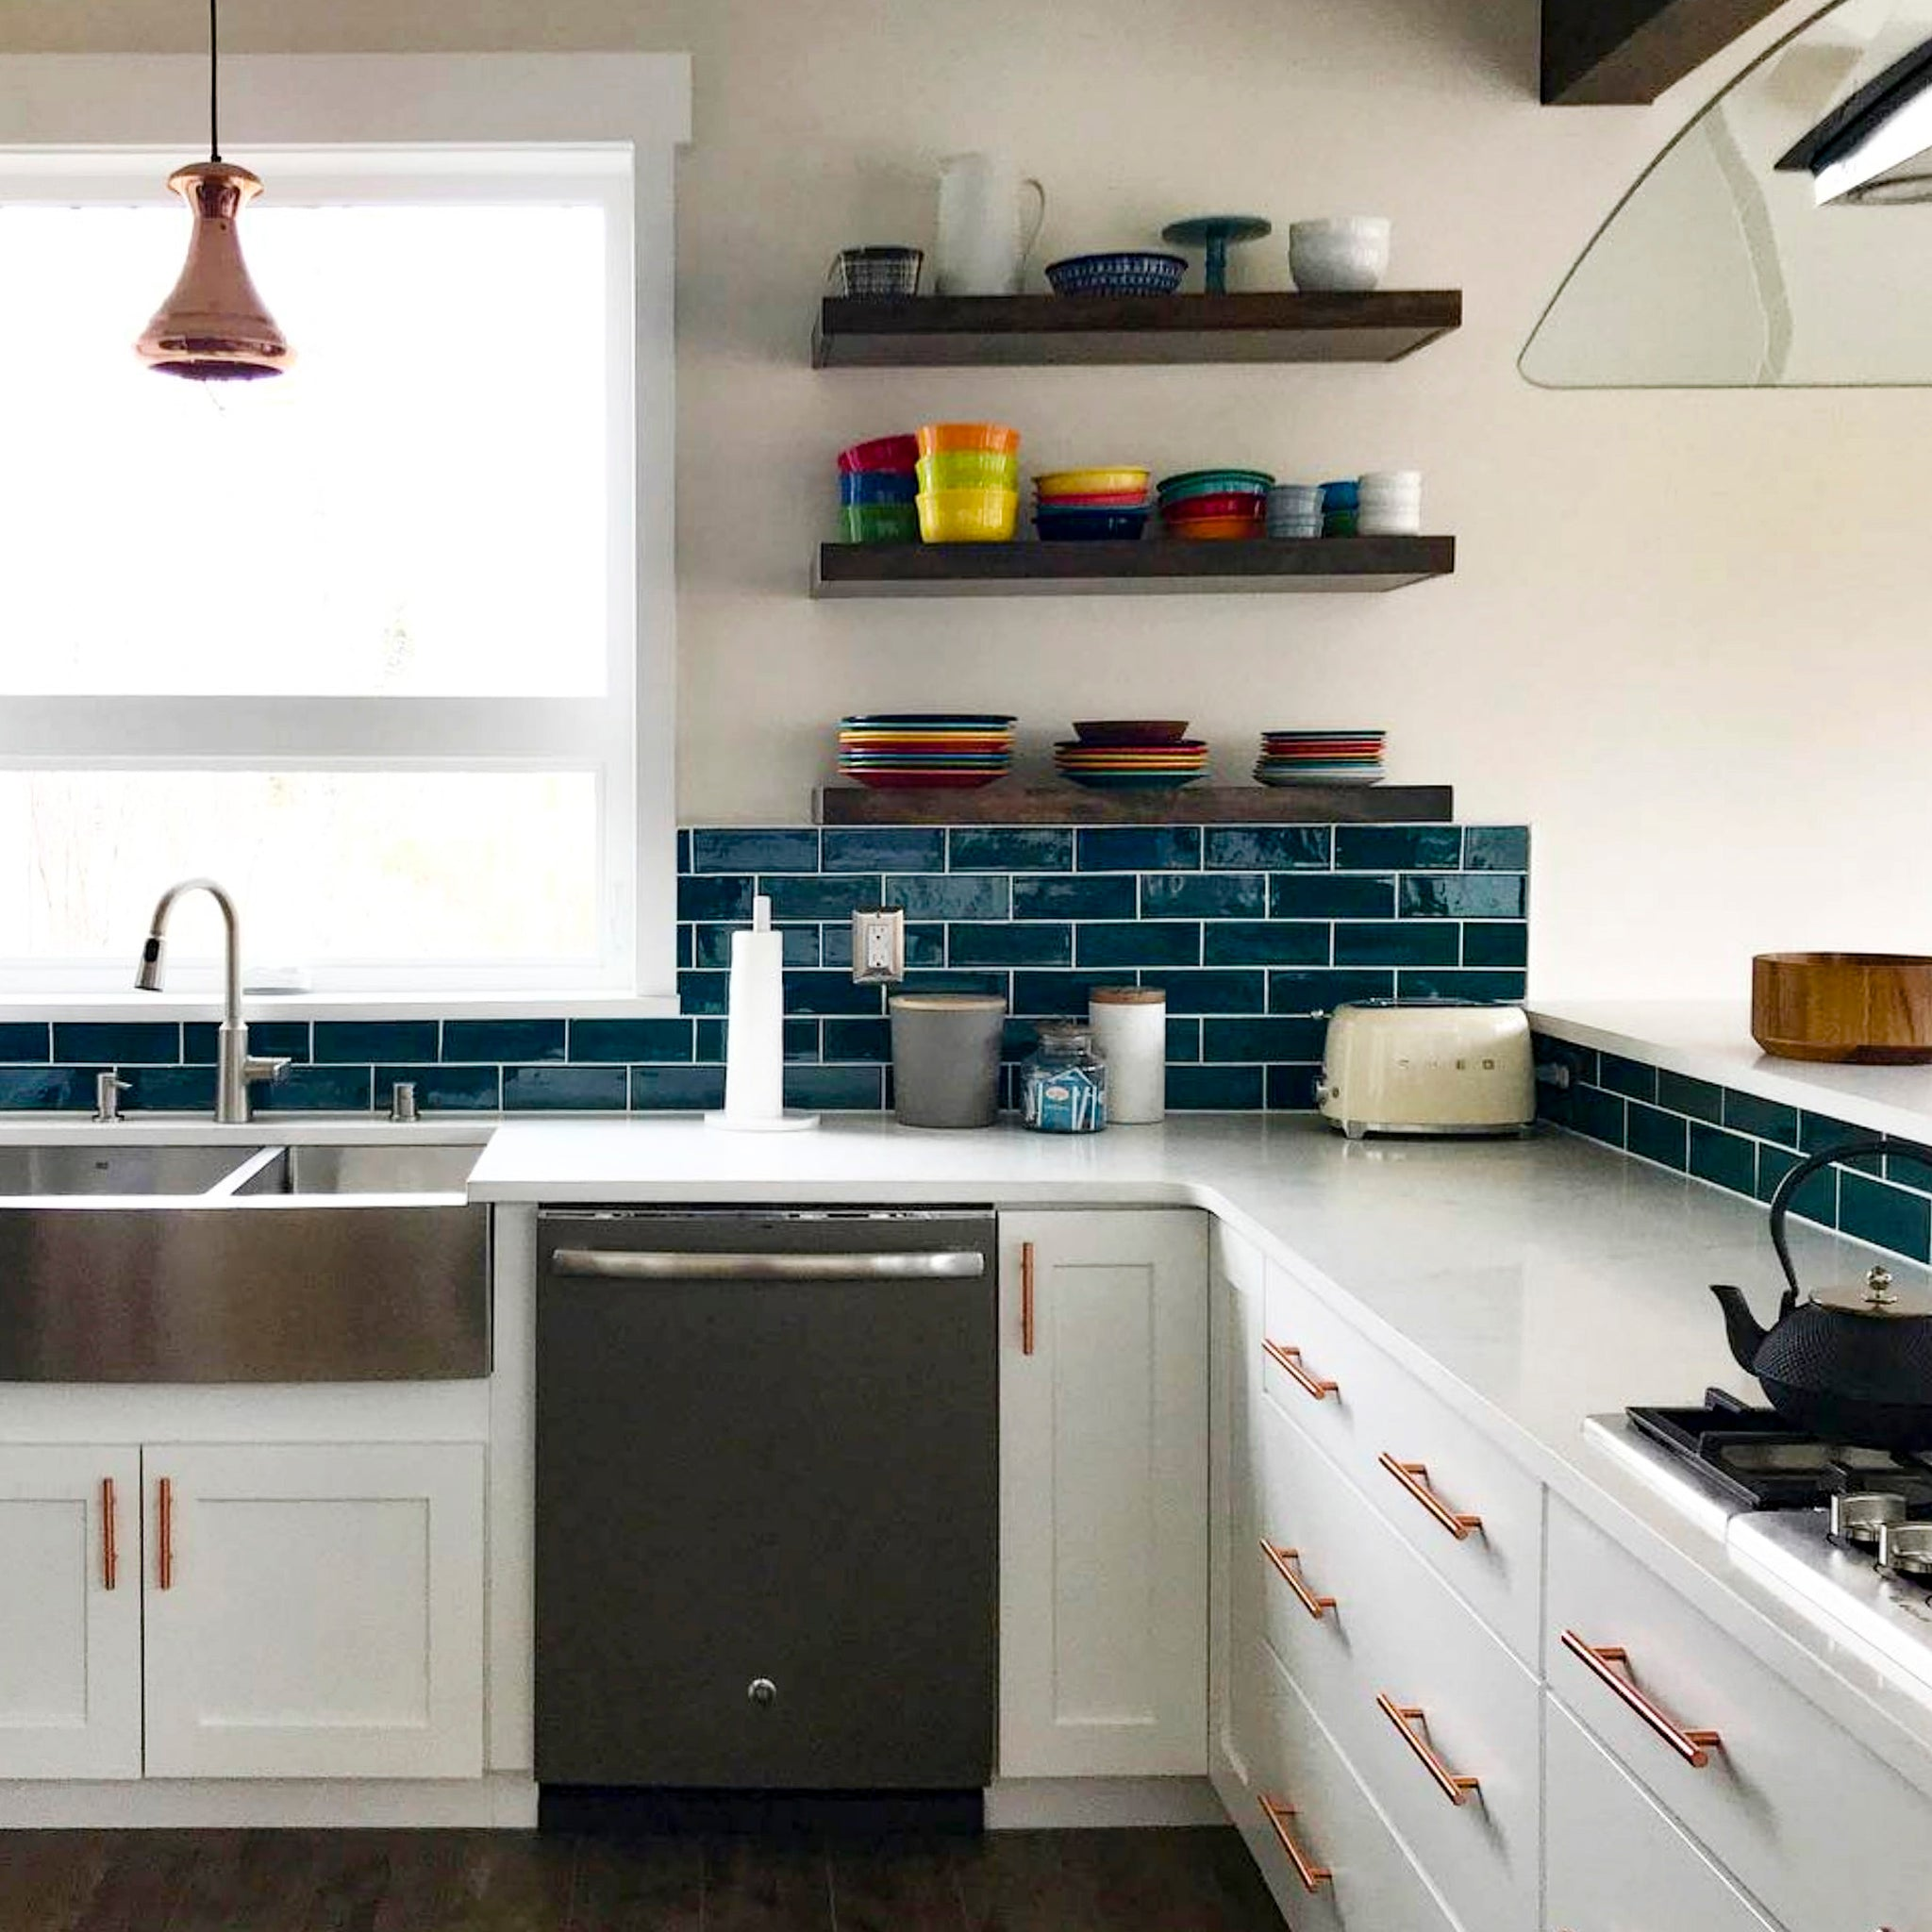 Make The Kitchen Backsplash More Beautiful: 11 Beautiful Kitchen Backsplashes That Will Wow Your